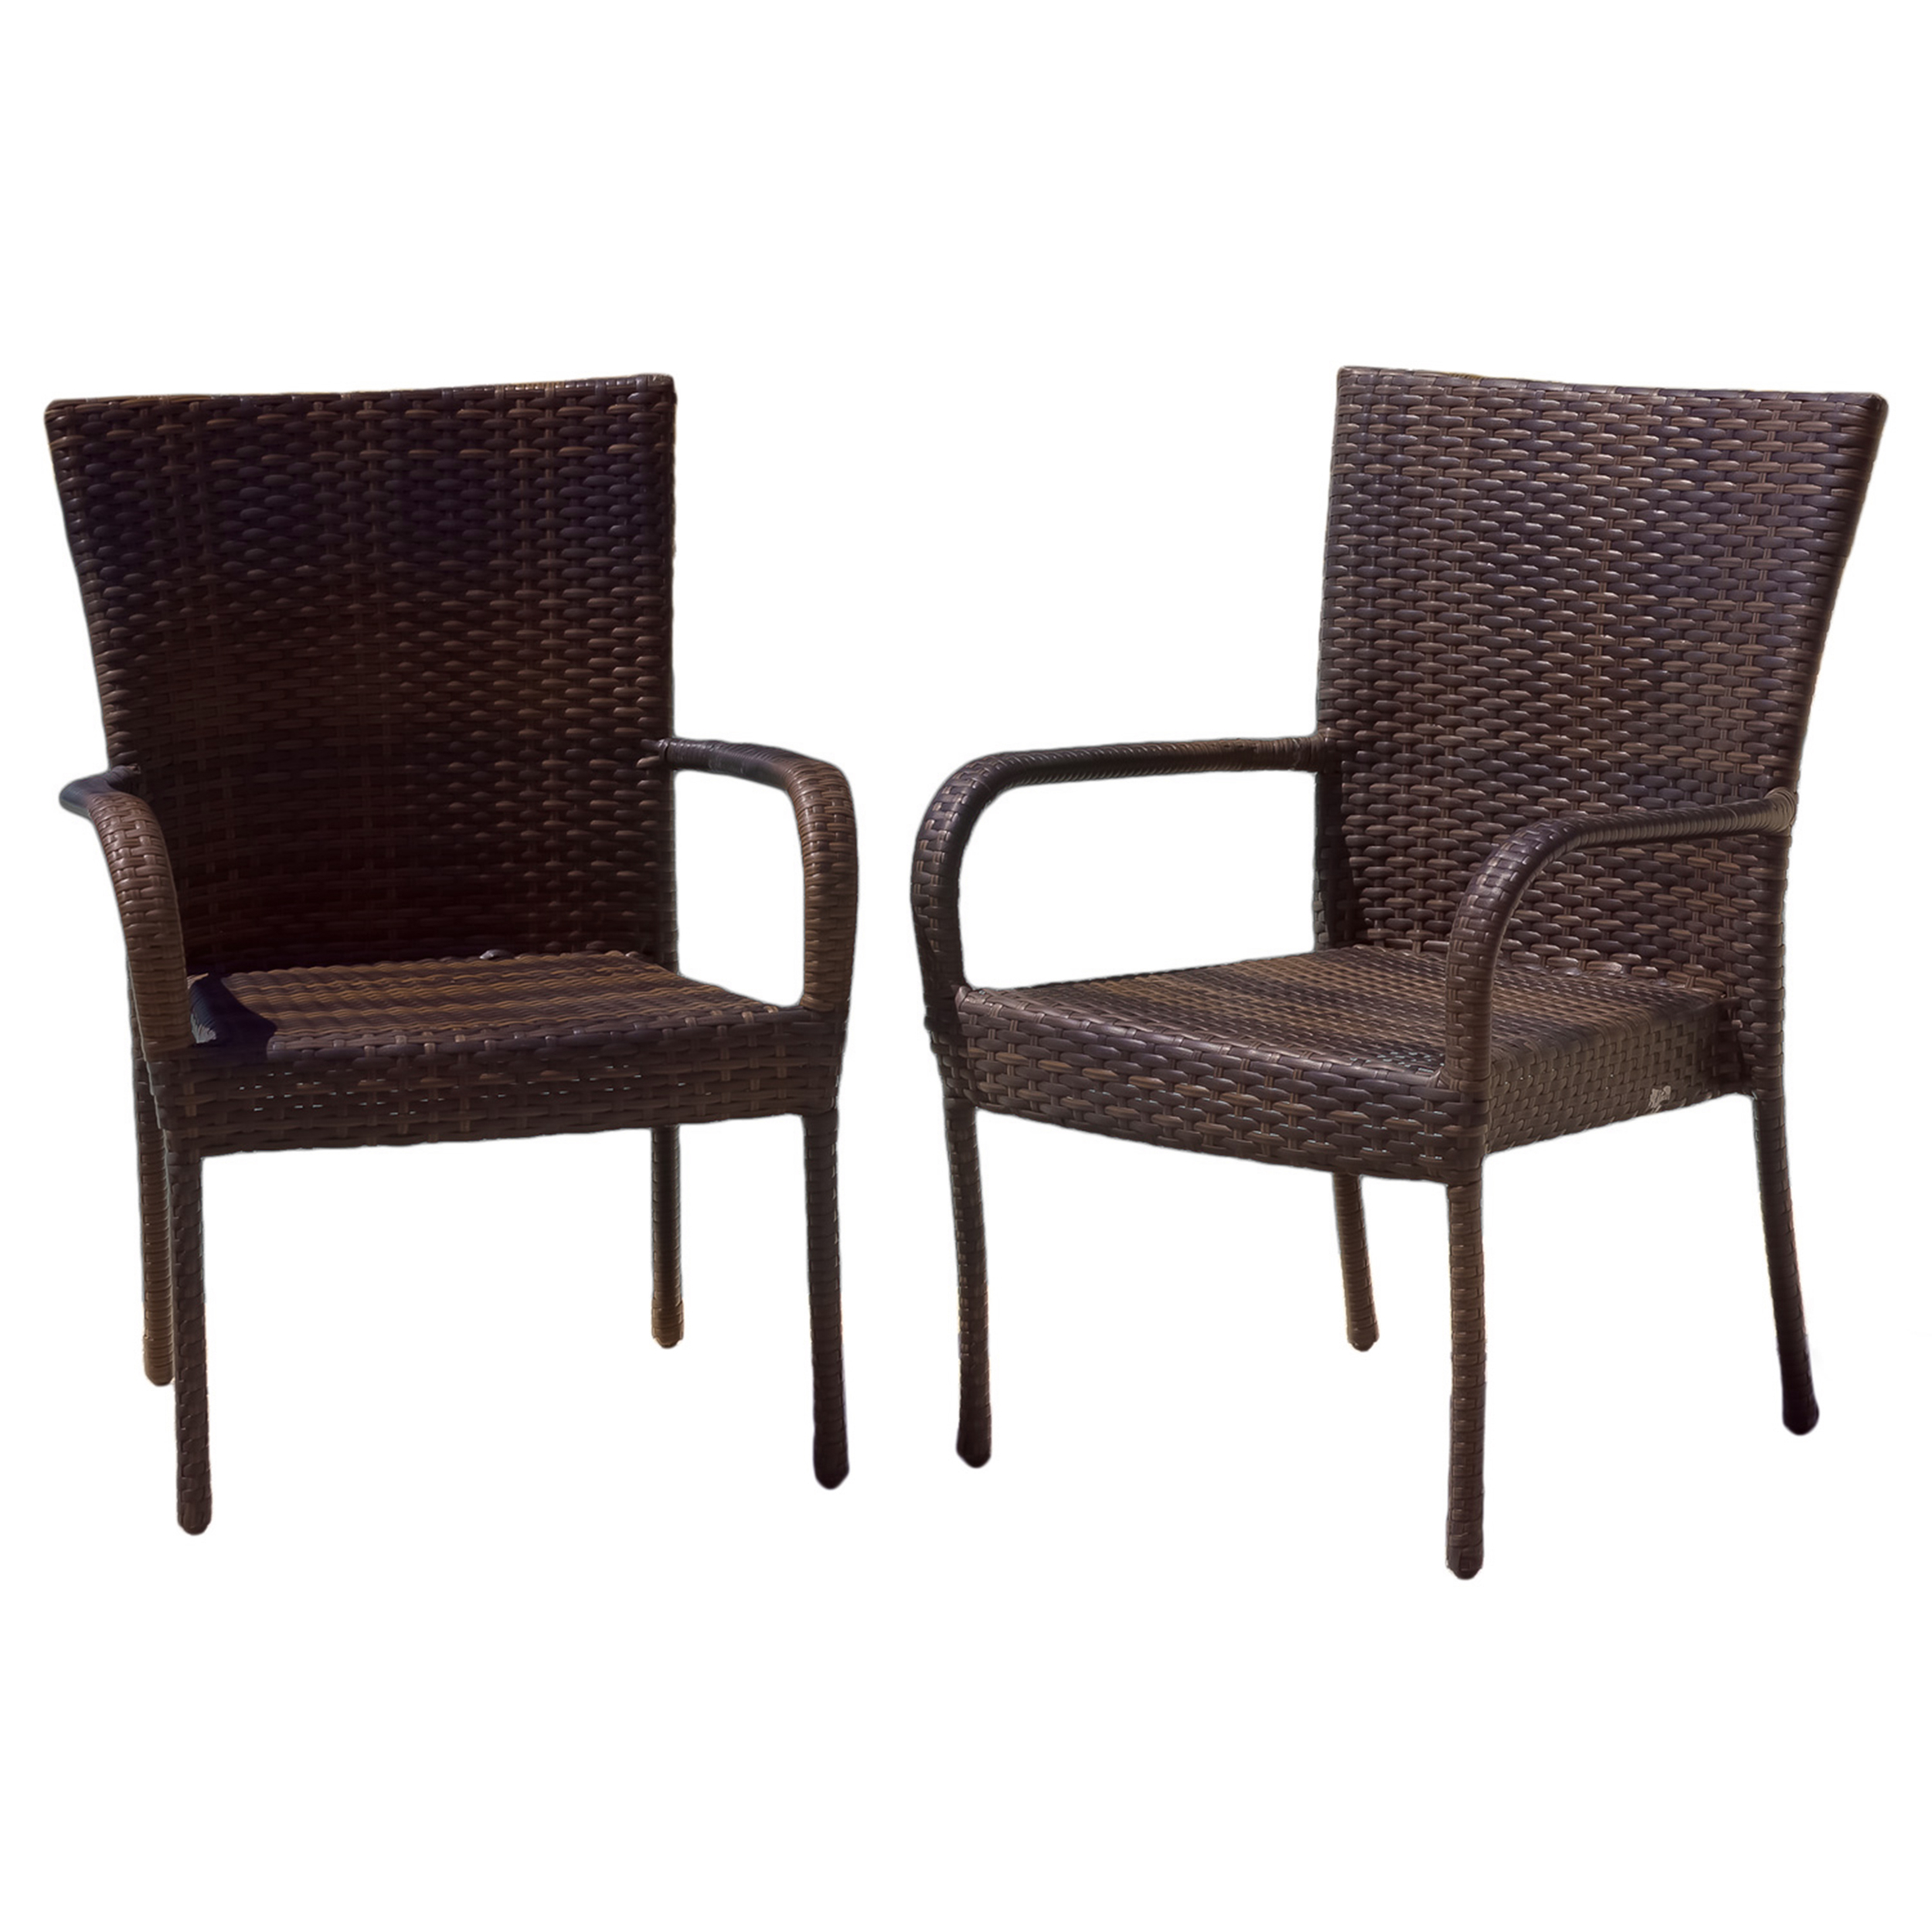 Best Selling Outdoor Wicker Chairs, 2 Pack